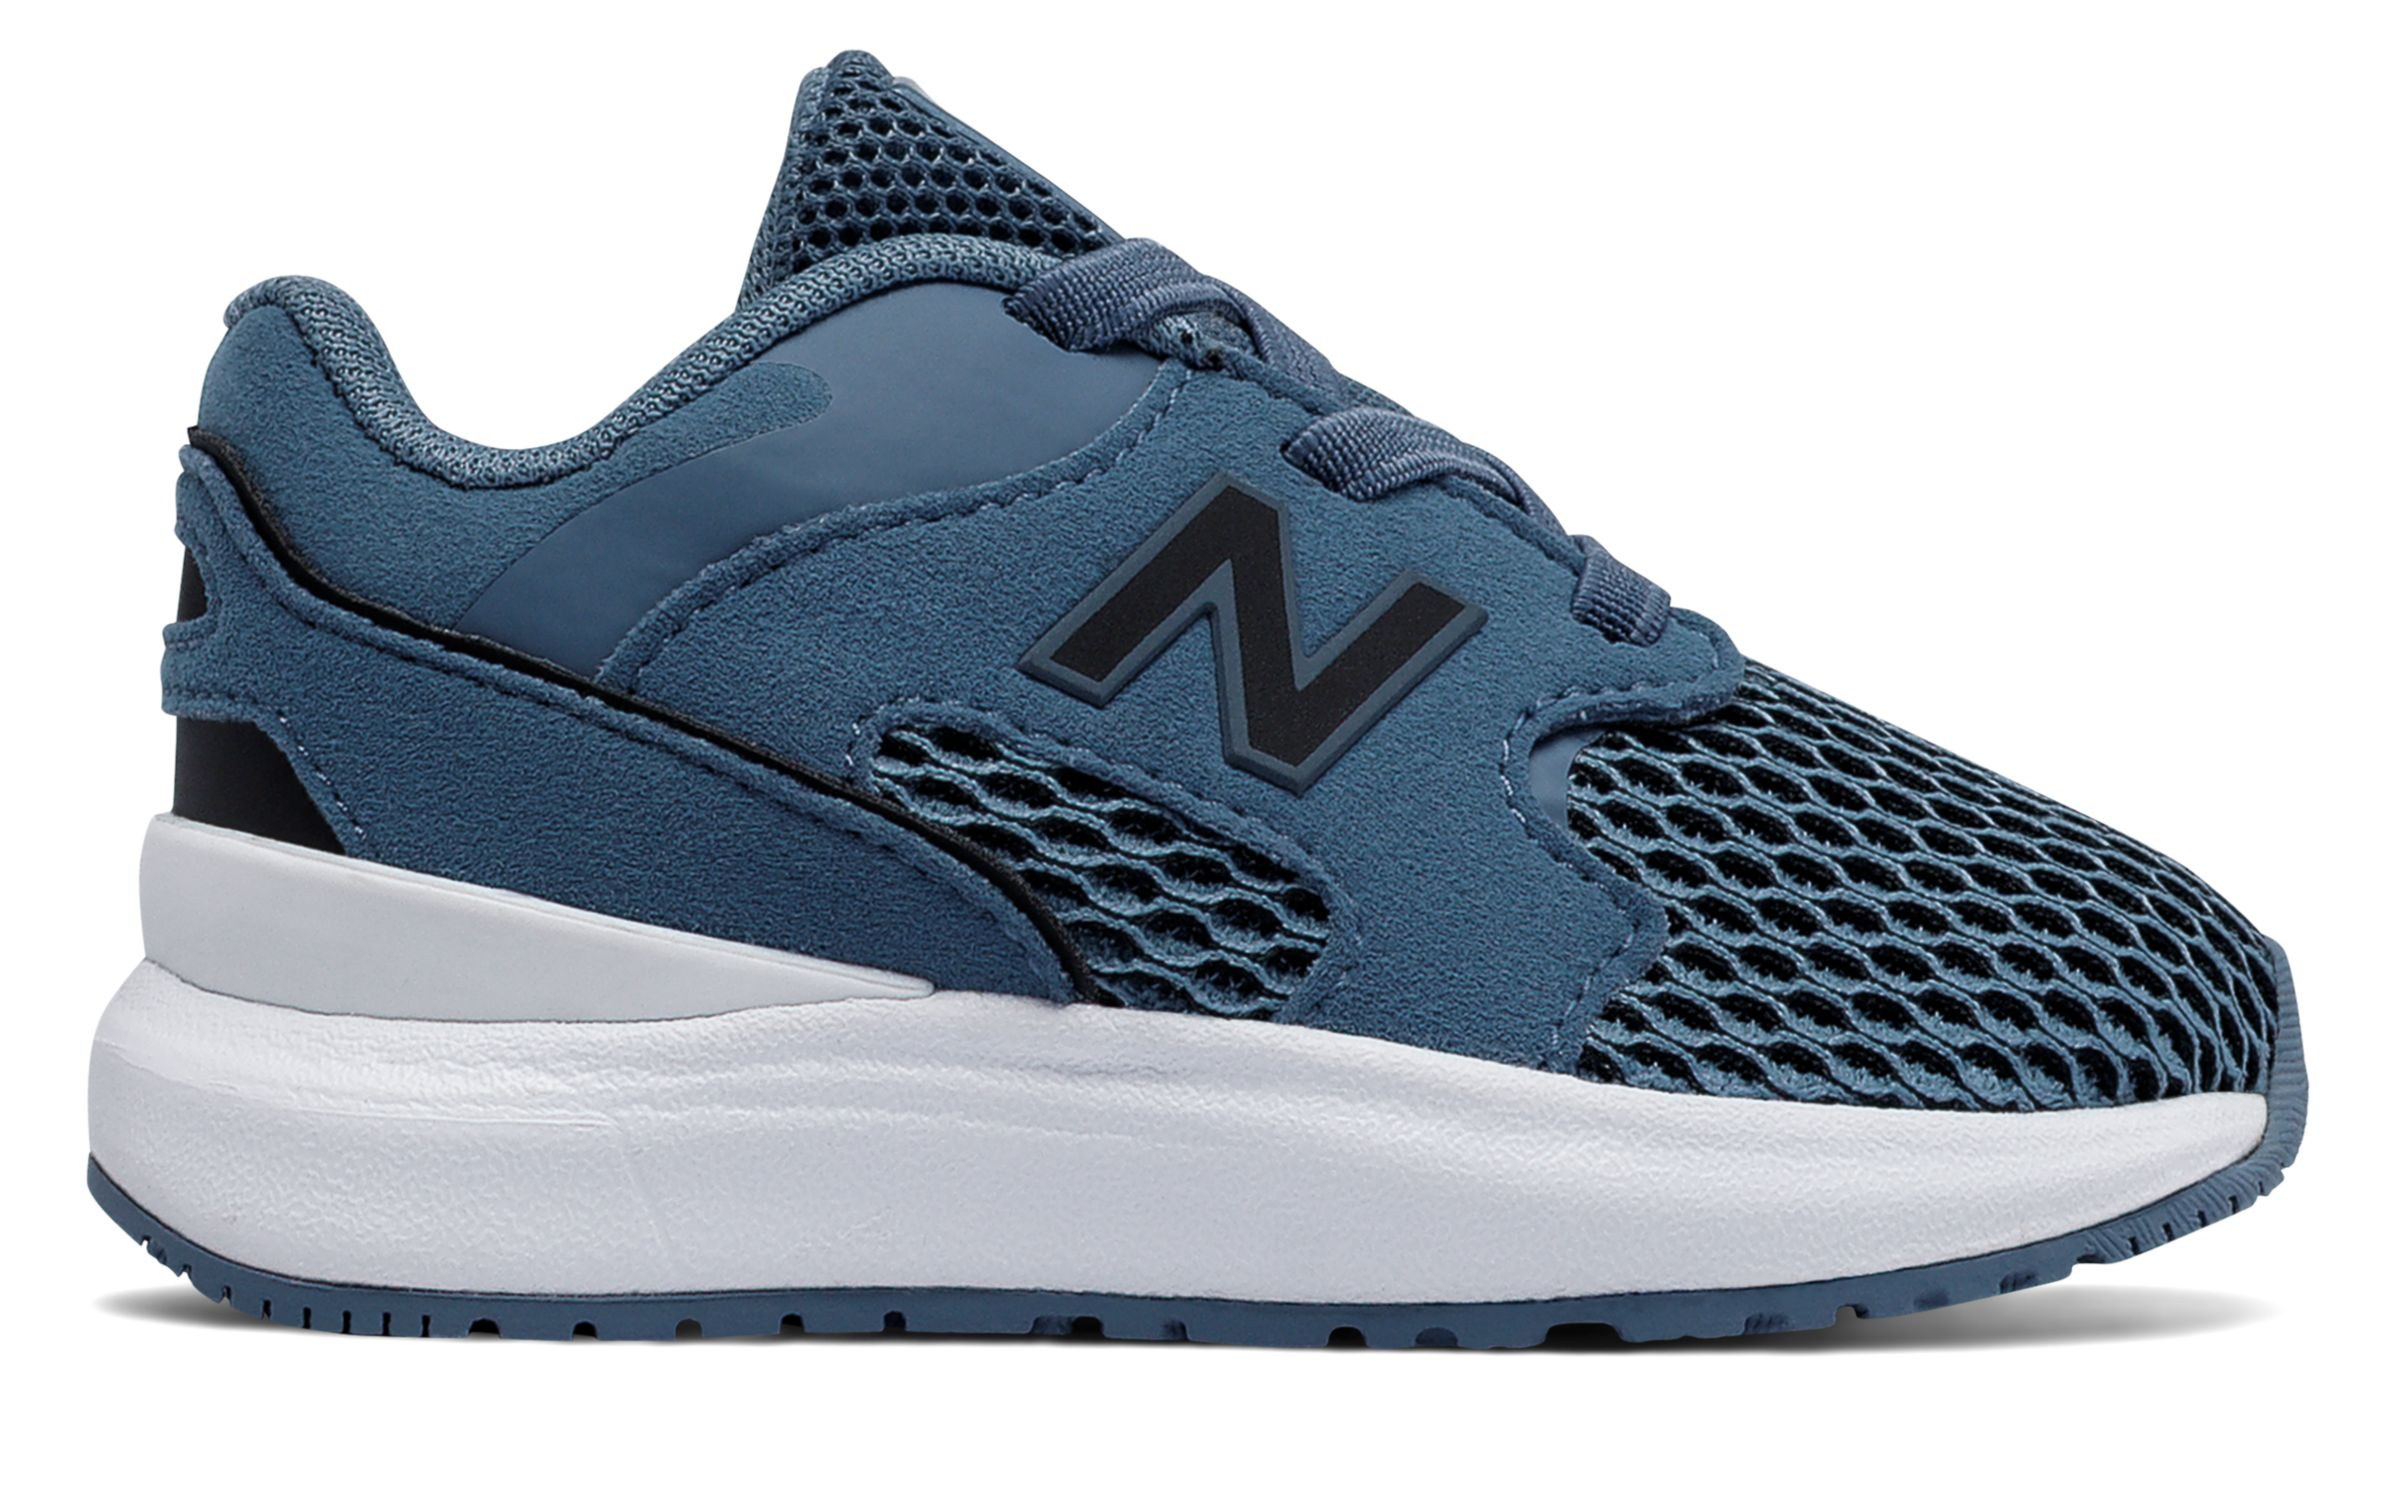 NB 1550 New Balance, Sky with Slate & Black